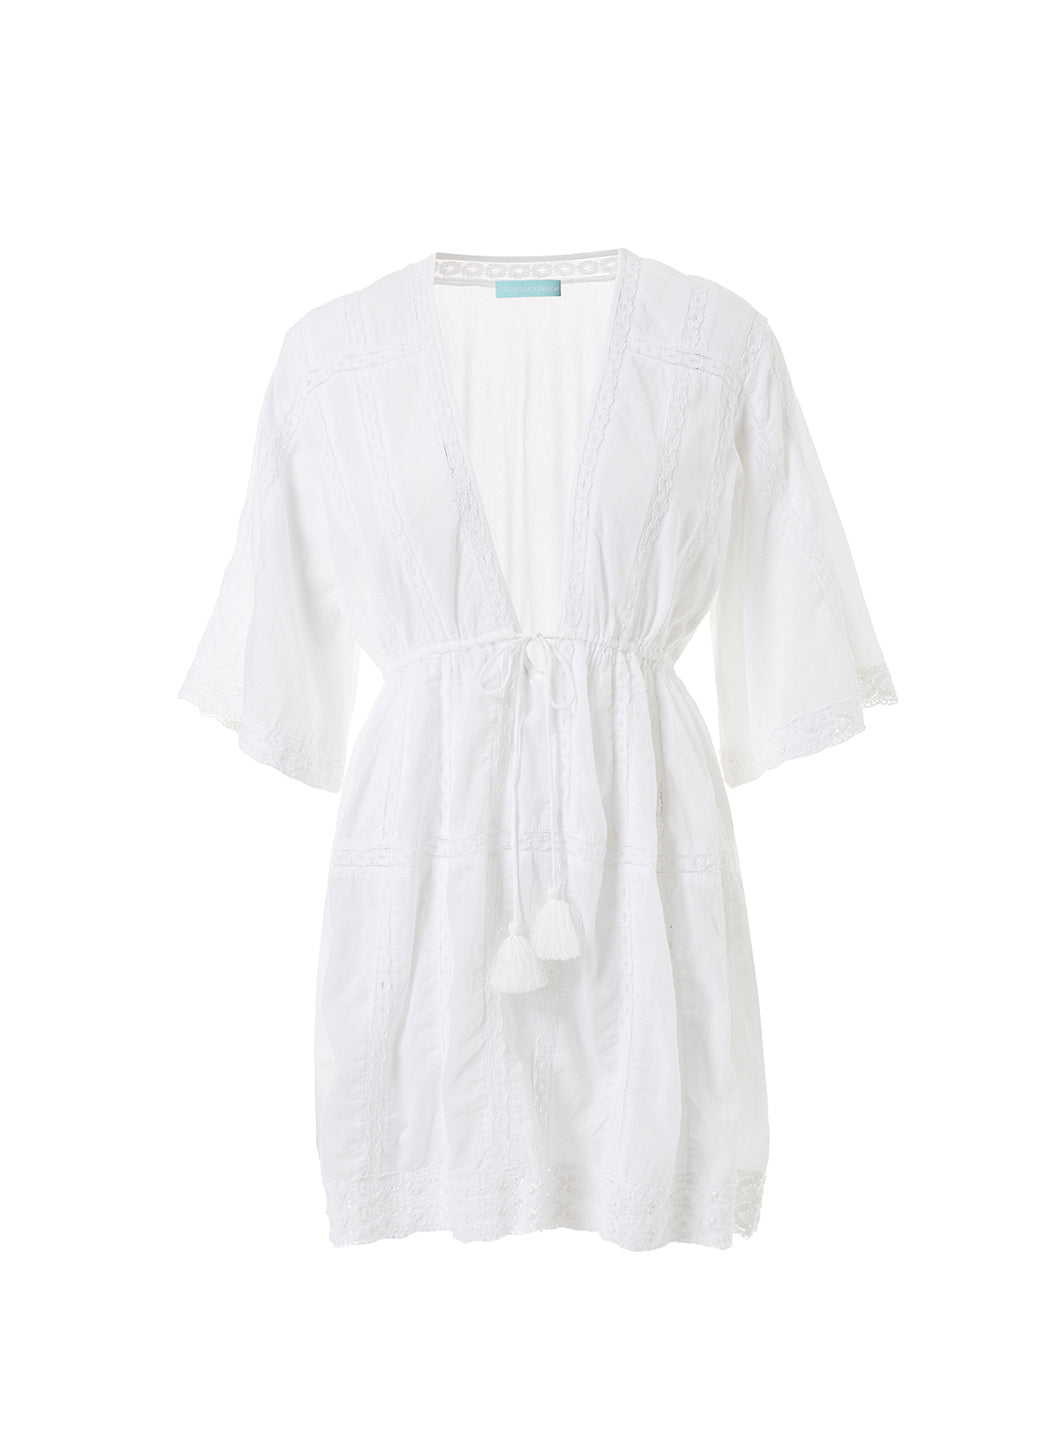 Jade White V-Neck 3/4 Sleeve Beach Dress - Melissa Odabash Beachwear